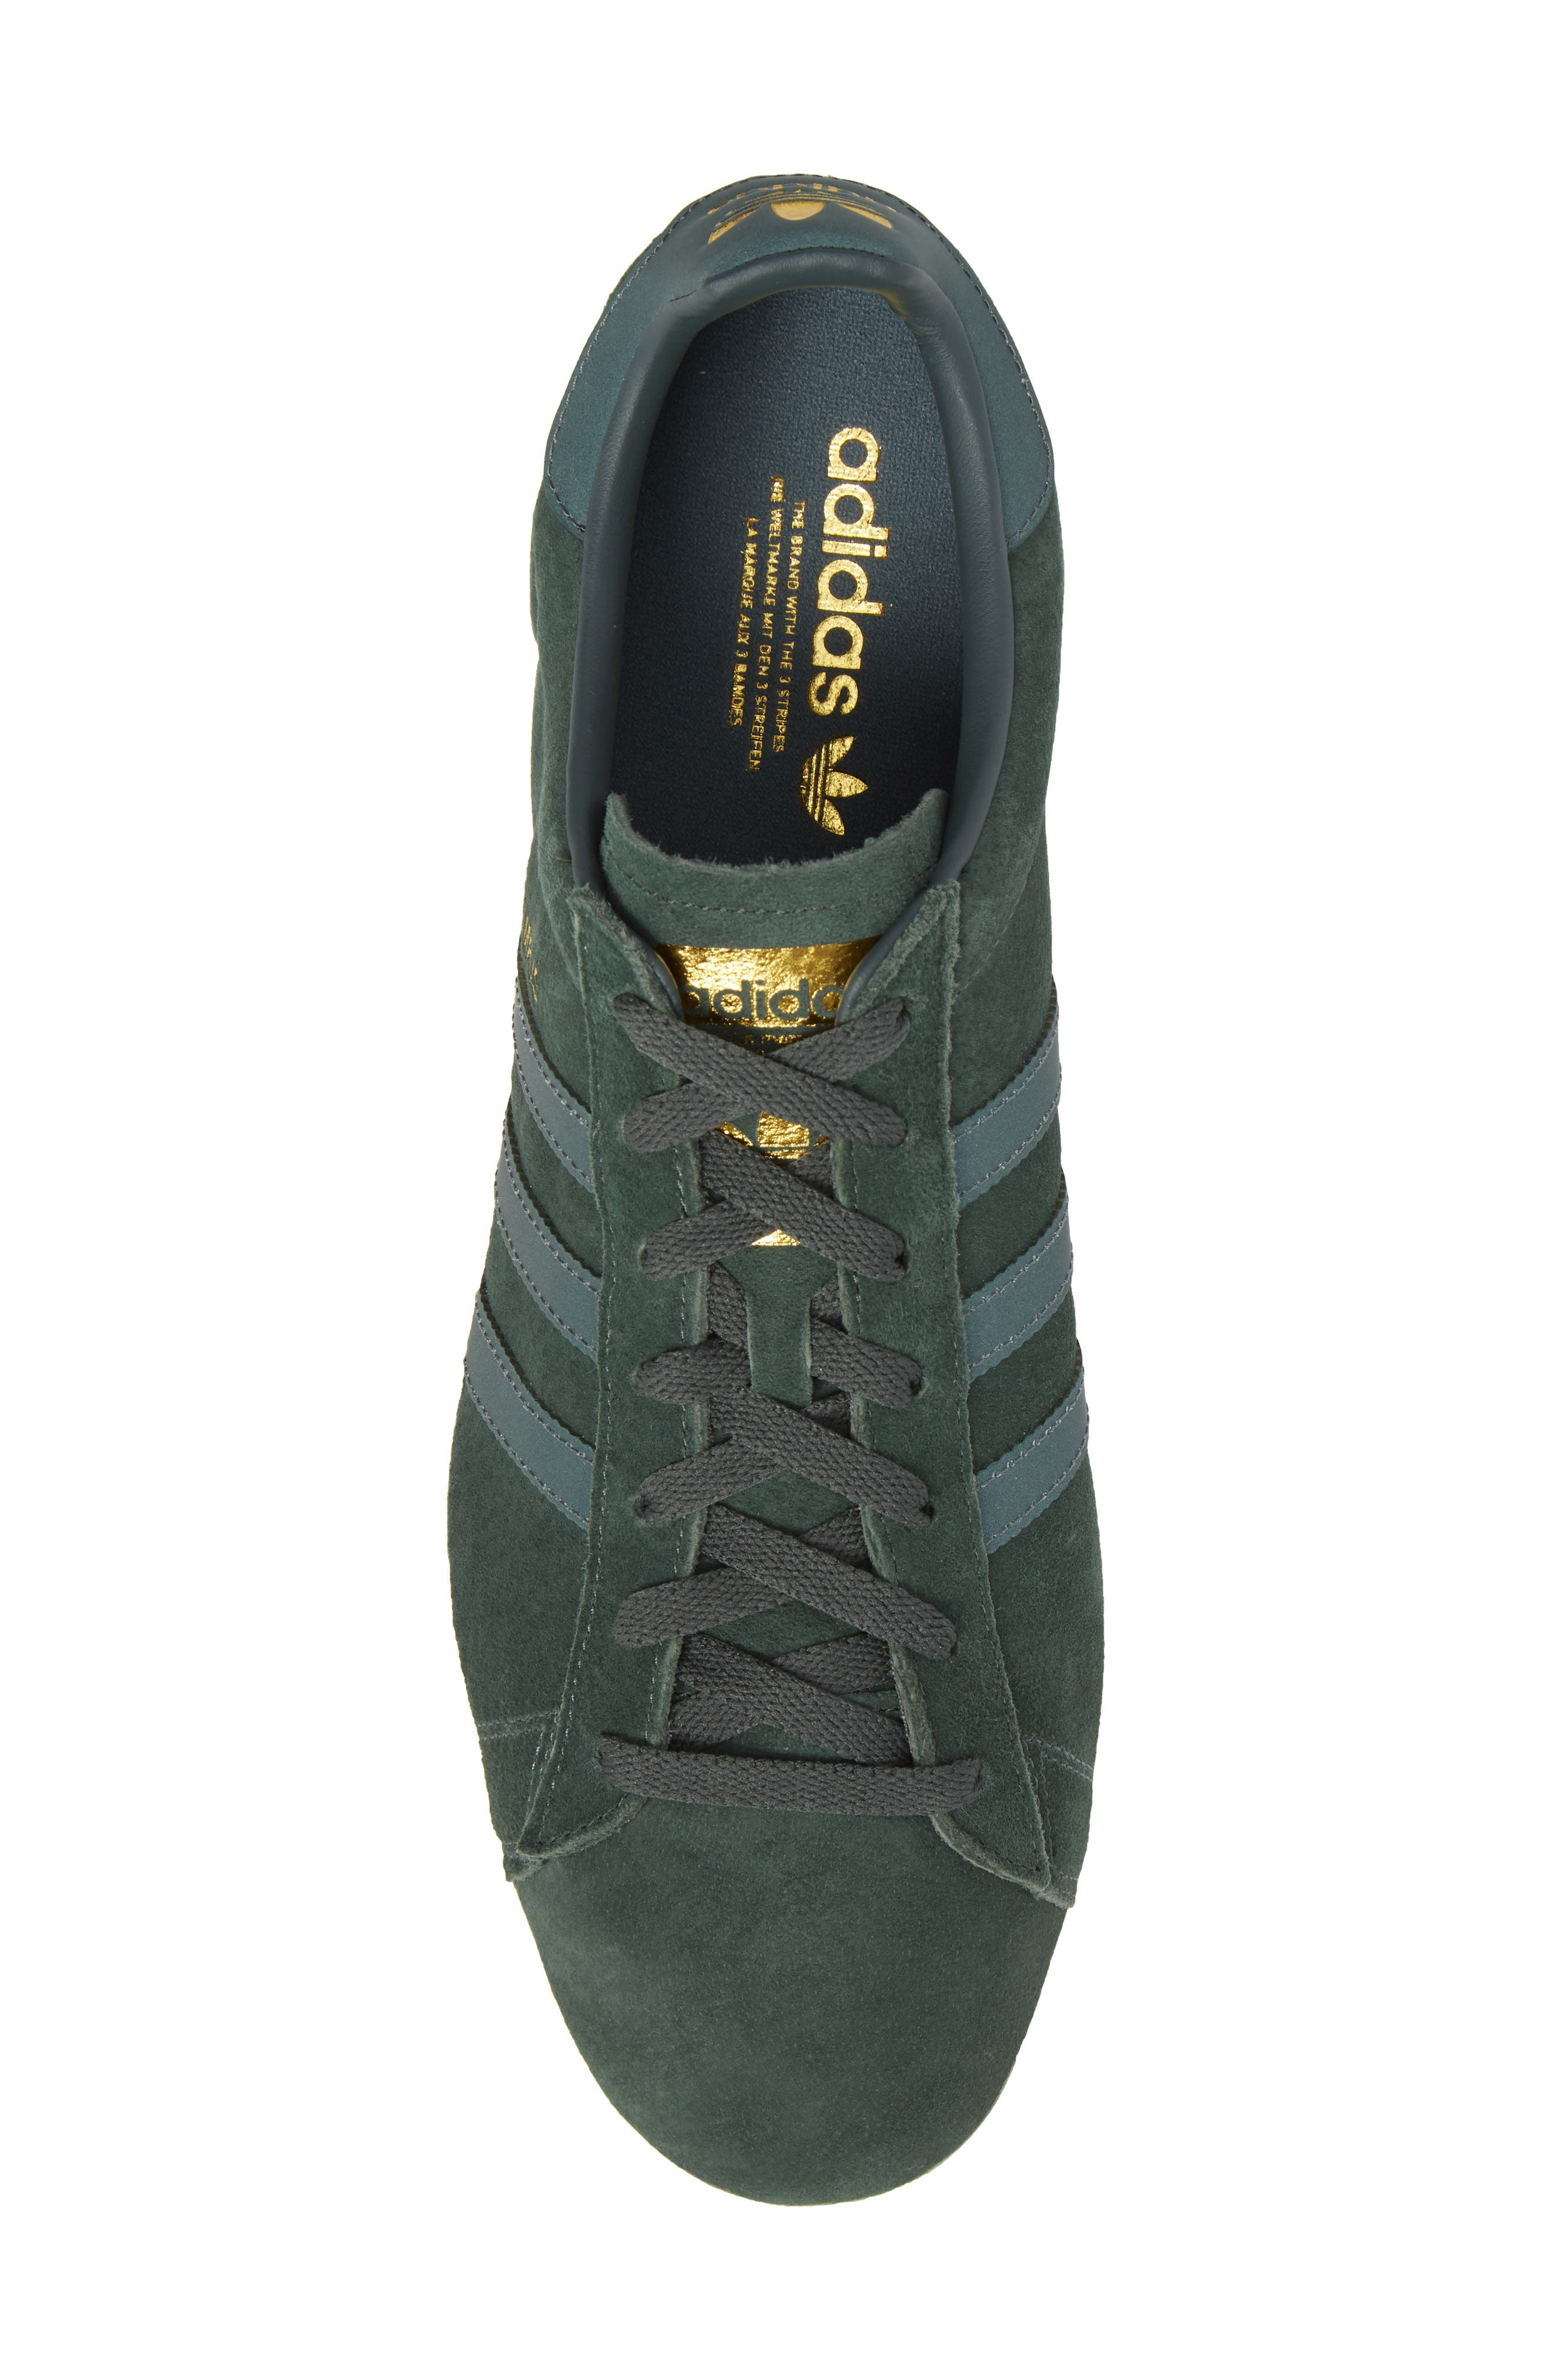 Campus Sneaker,                             Alternate thumbnail 5, color,                             Utility Ivy/ Reflective/ Gold